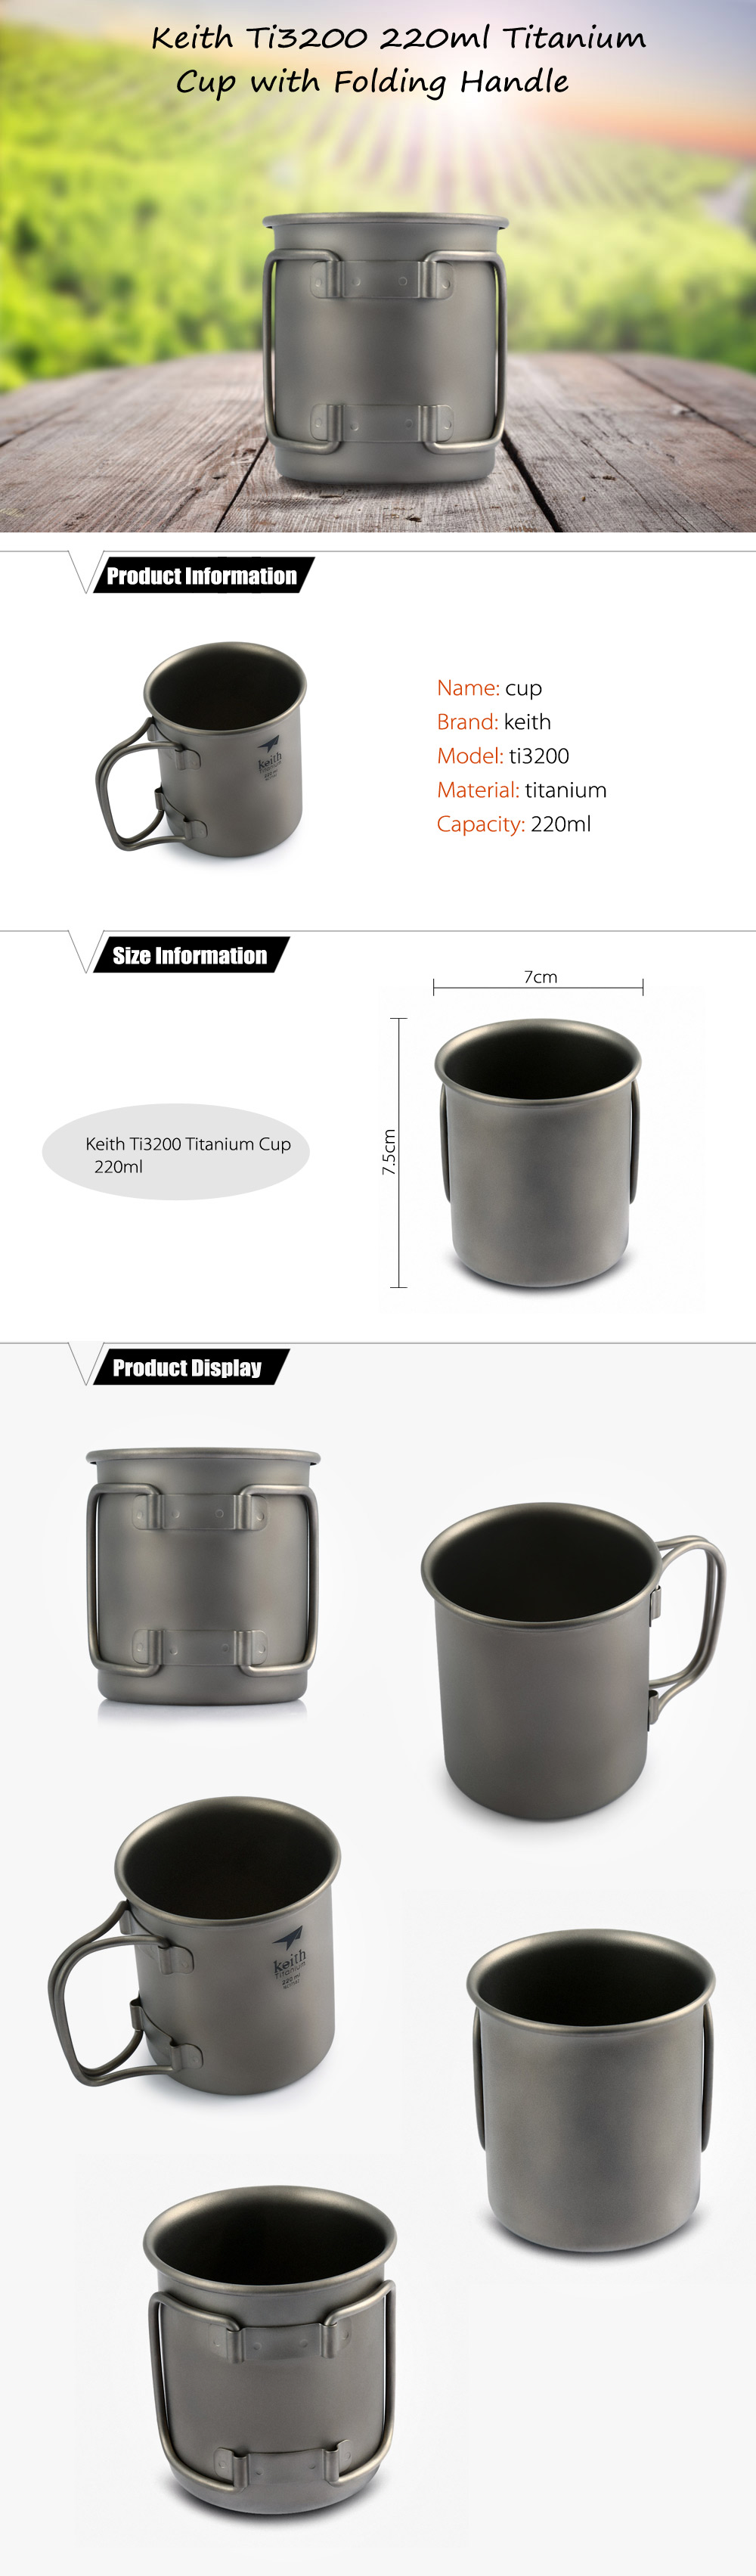 Keith Ti3200 220ml Titanium Cup with Folding Handle